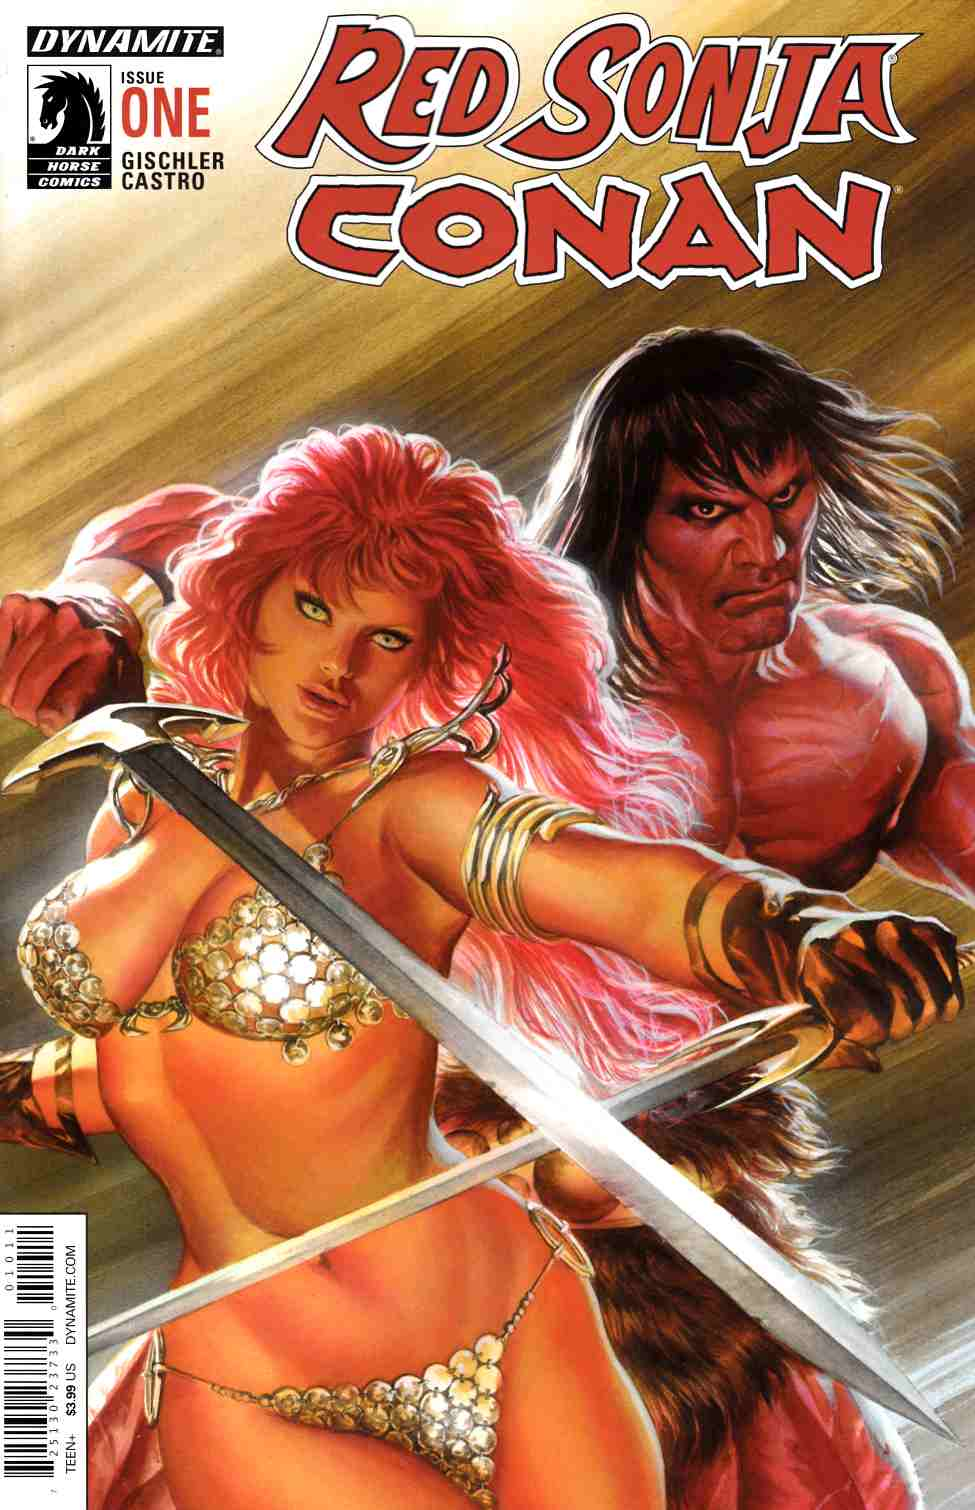 Red Sonja Conan #1 Cover A- Ross [Dynamite Comic]